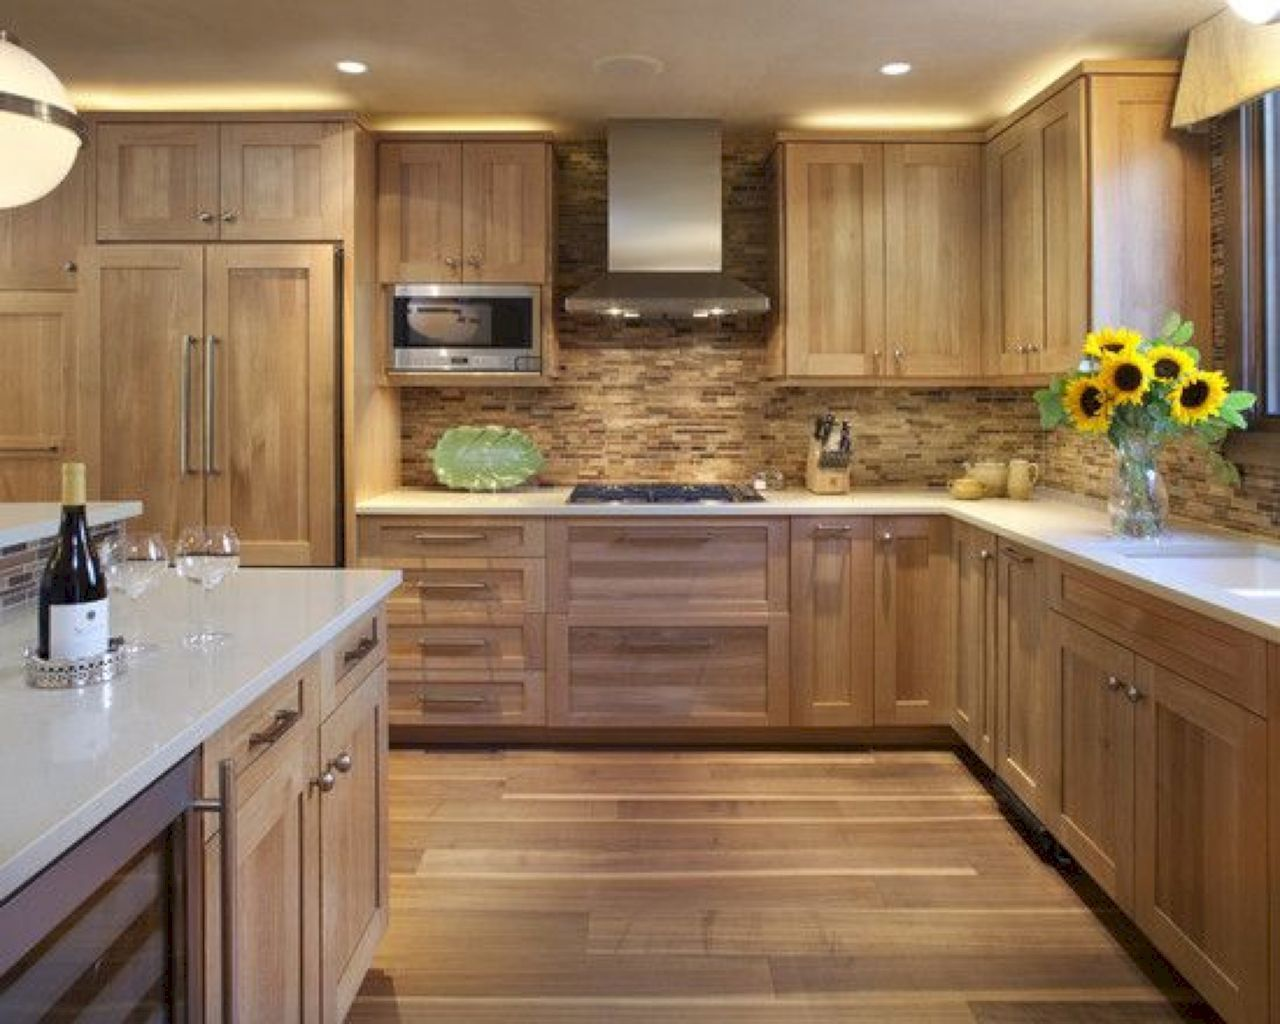 85 Awesome Modern Kitchen Design And Decor Ideas Awesome Decor Design Ideas Kitchen Mod Kitchen Design Contemporary Wooden Kitchen Wood Kitchen Cabinets